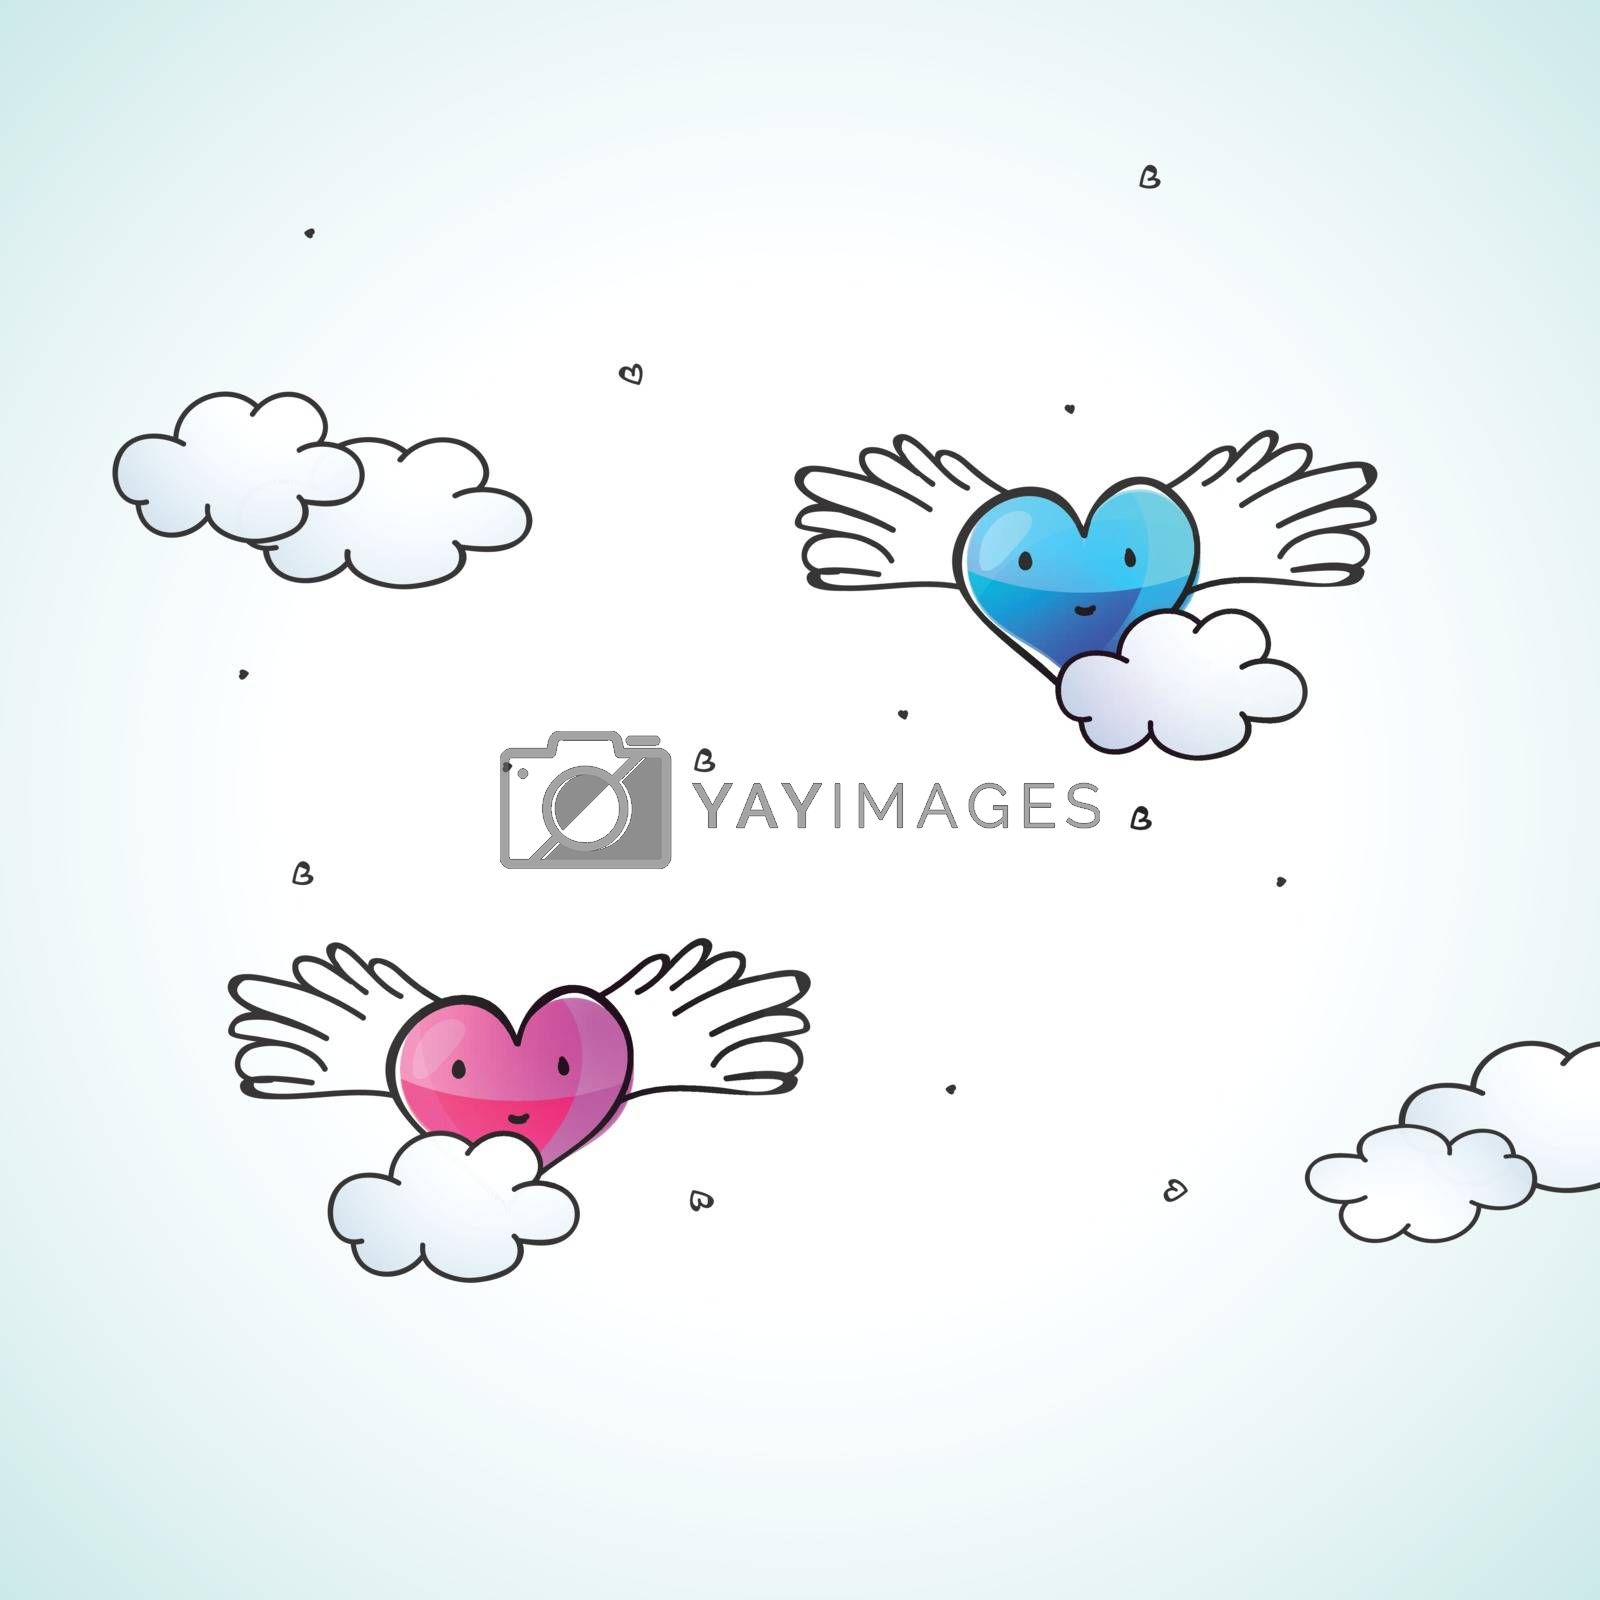 Creative Pink and Blue Hearts with Wings for Happy Valentine's Day Celebration.